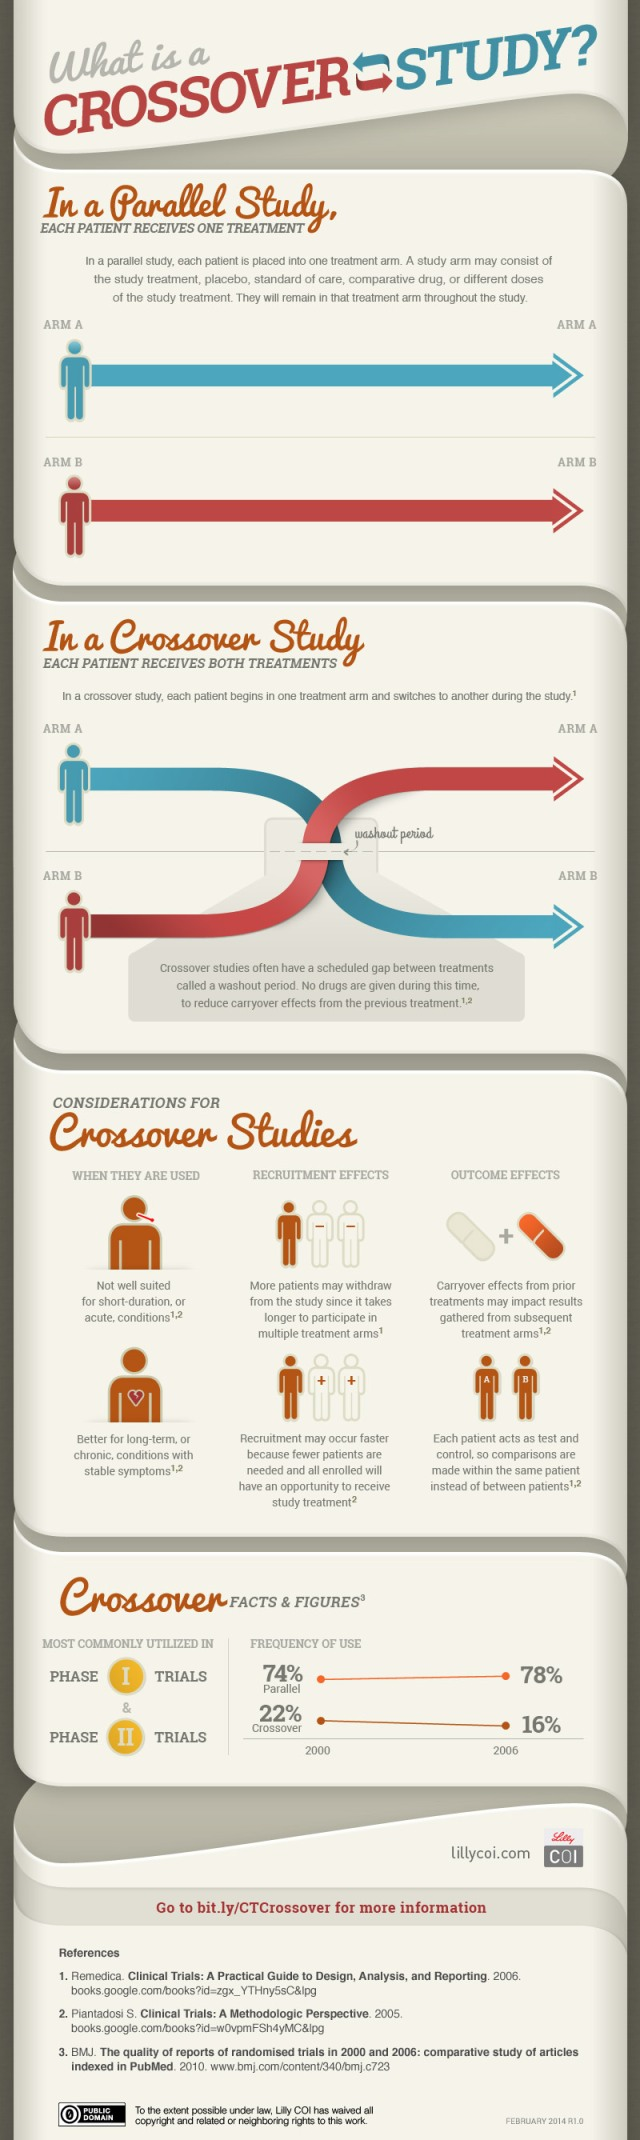 crossover study, parallel study, clinical trials